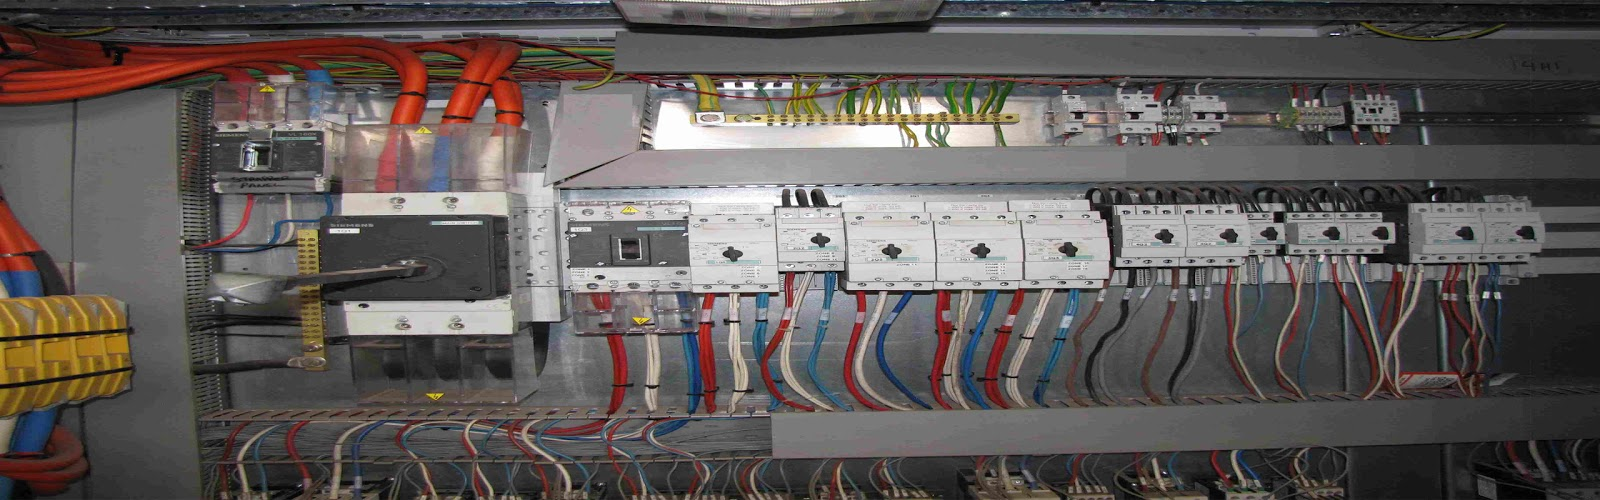 hight resolution of commercial electrical wiring